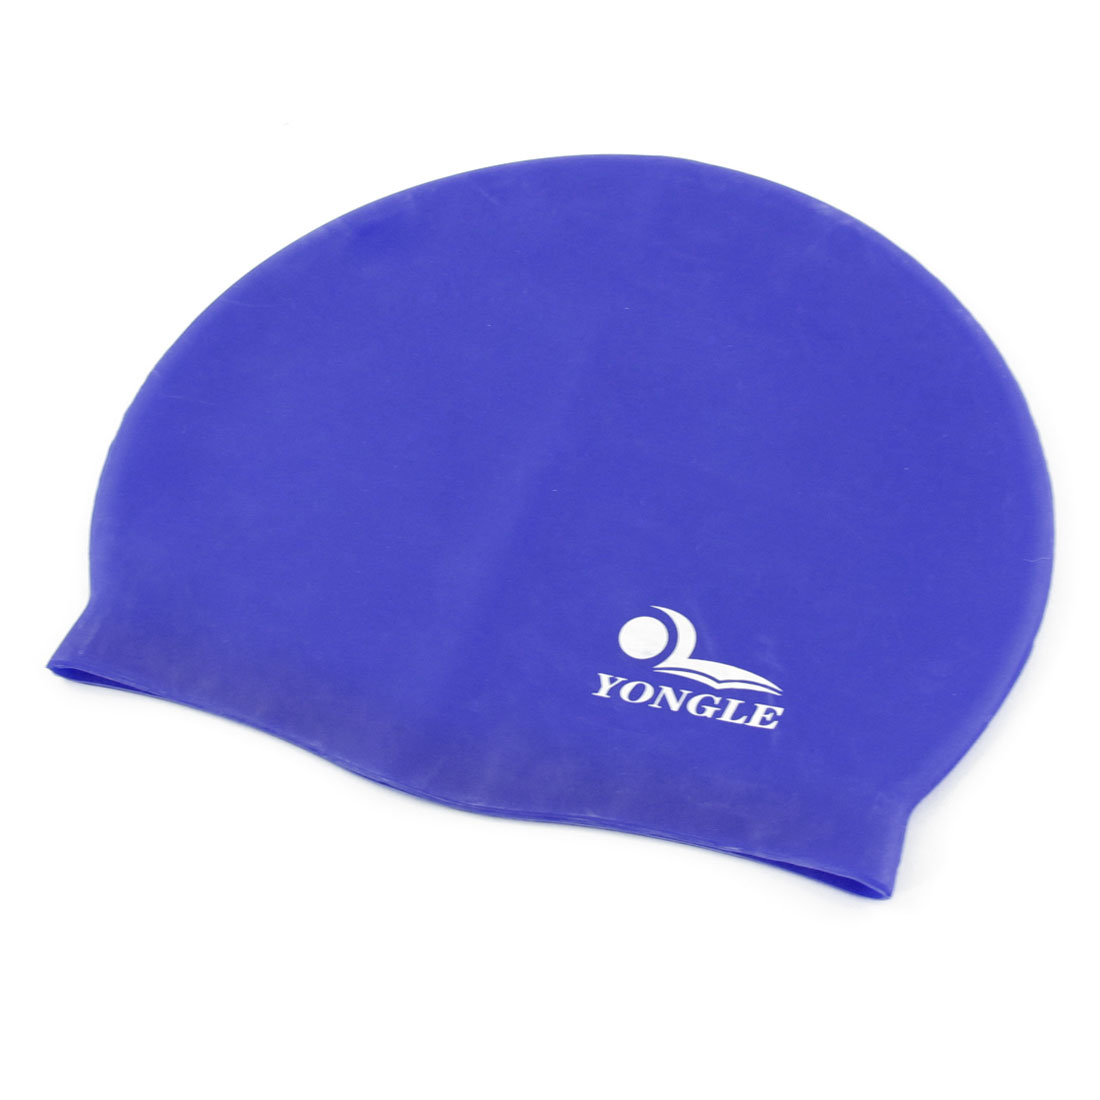 Blue Silicone Skin Stretchy Surfing Swimming Cap Hat for Adults